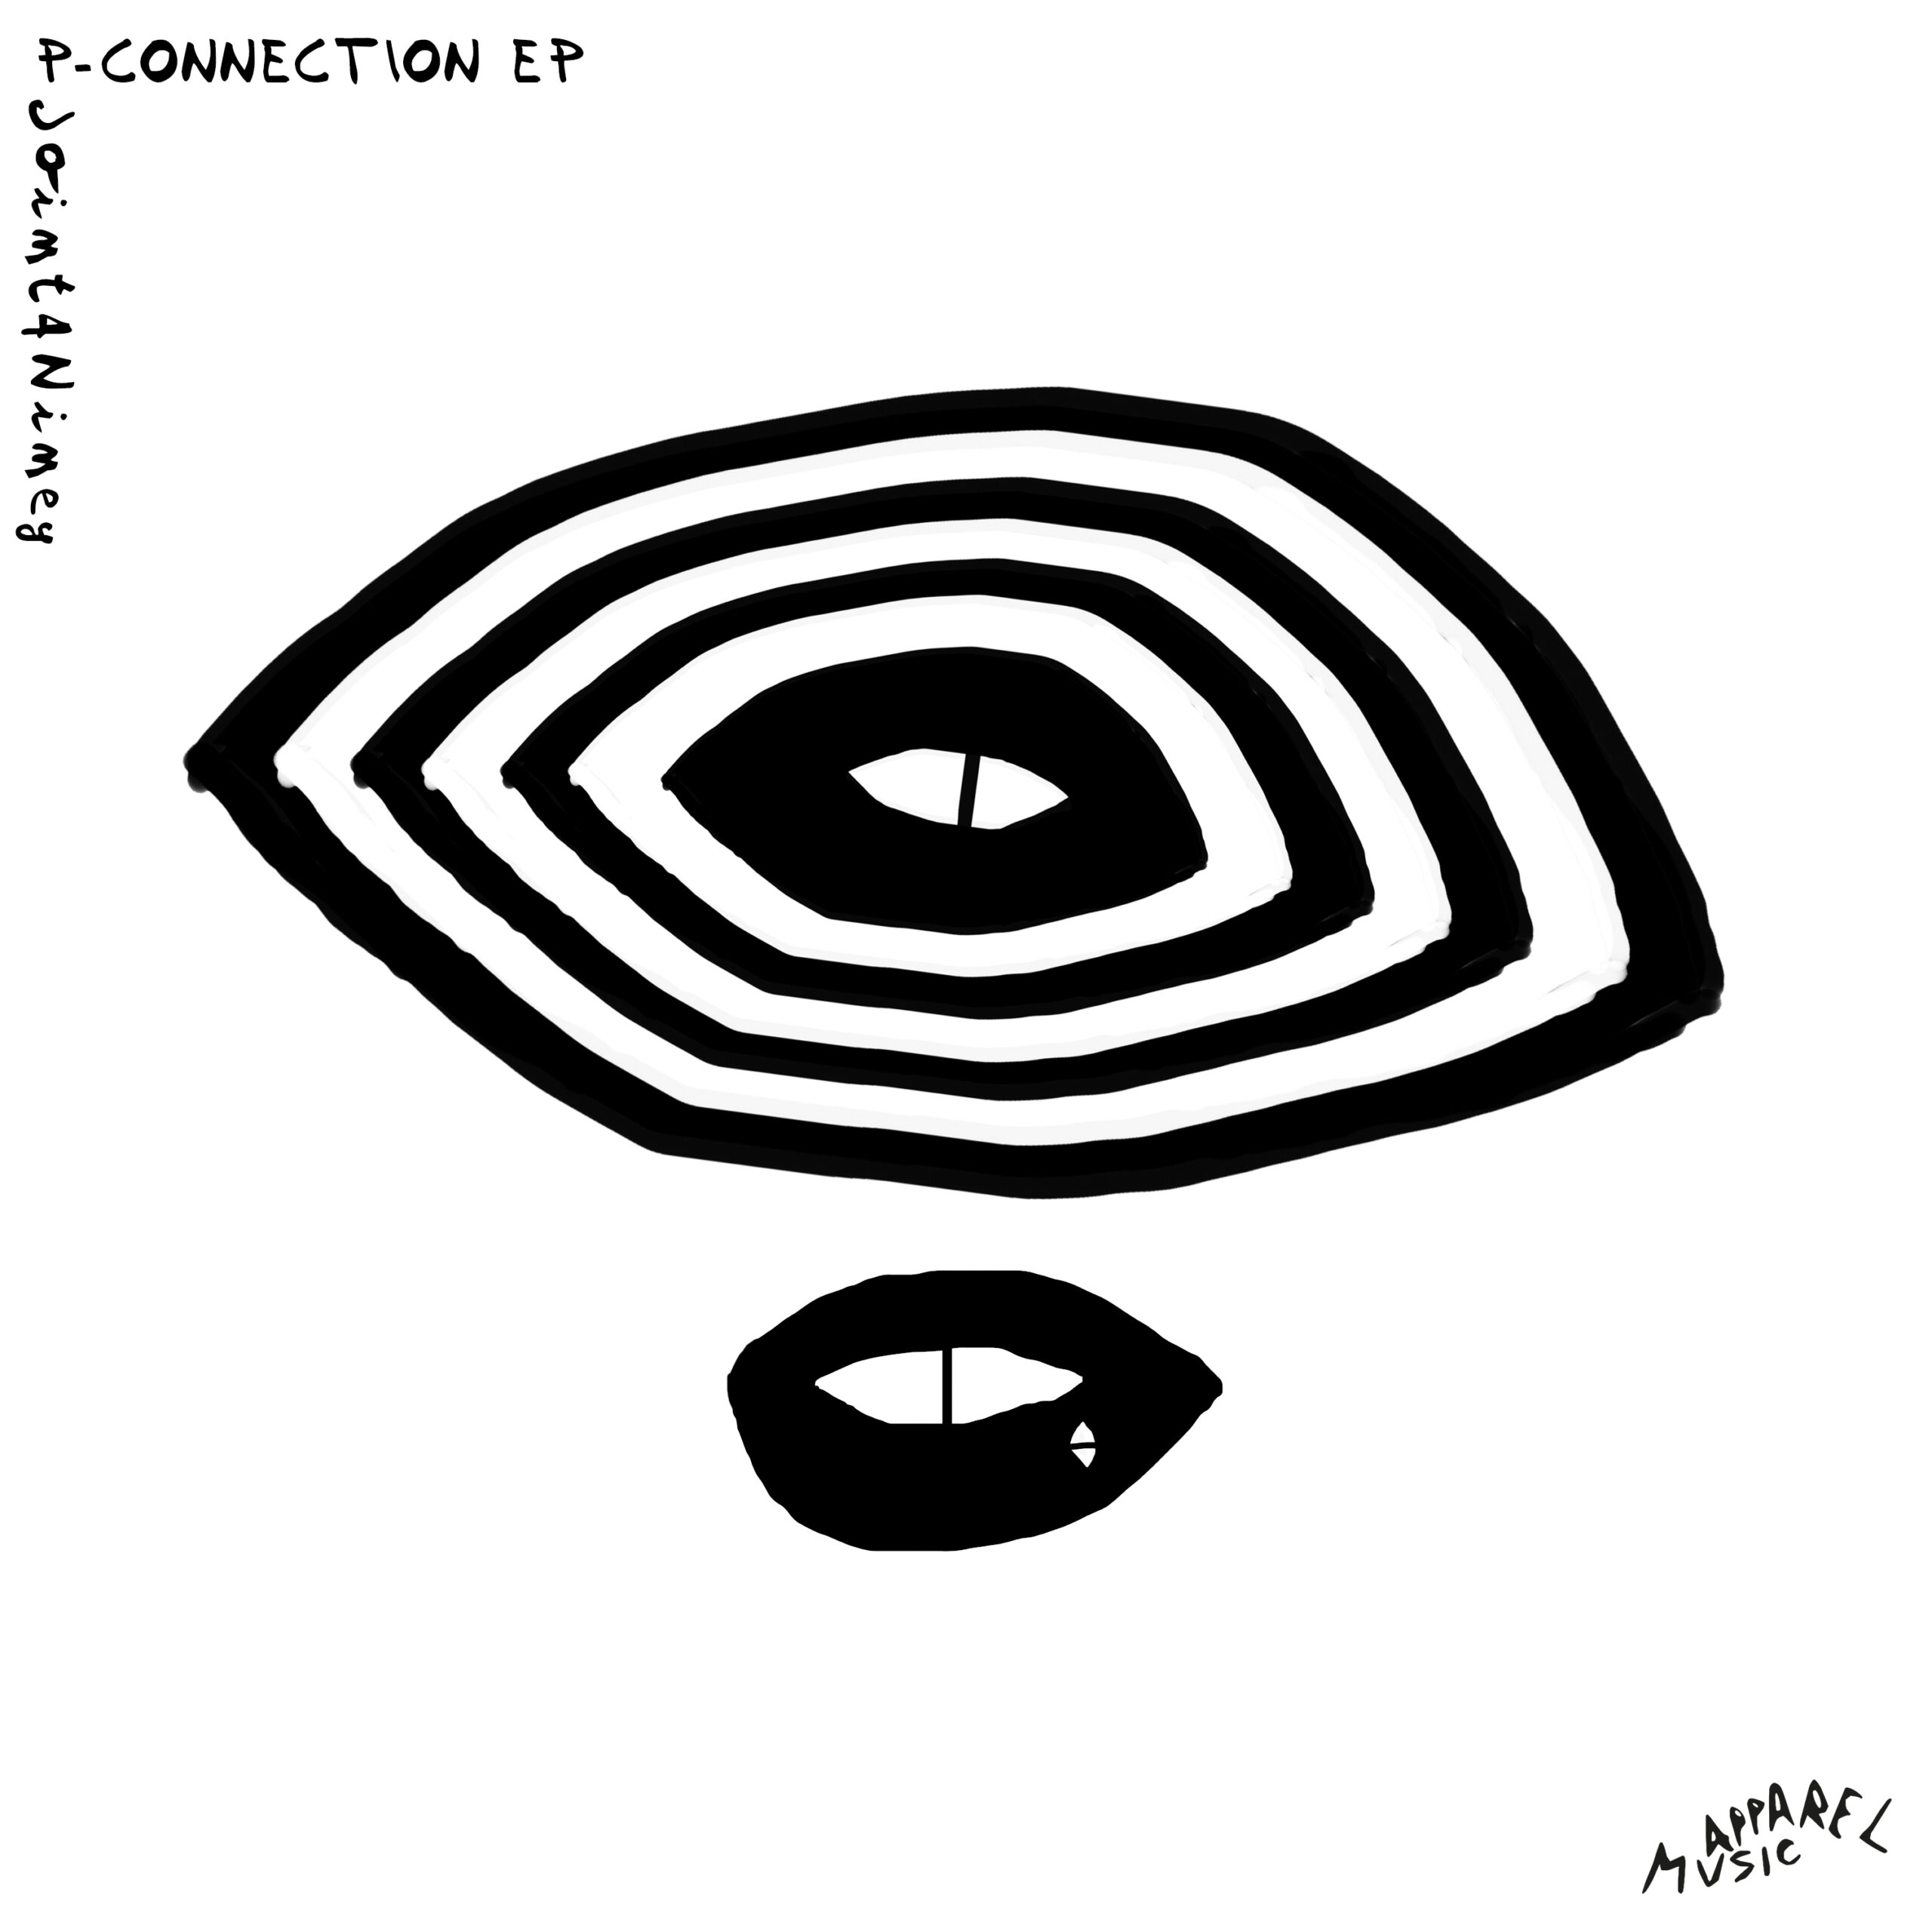 Coming Soon 'Joint4Nine – P-Connection' EP